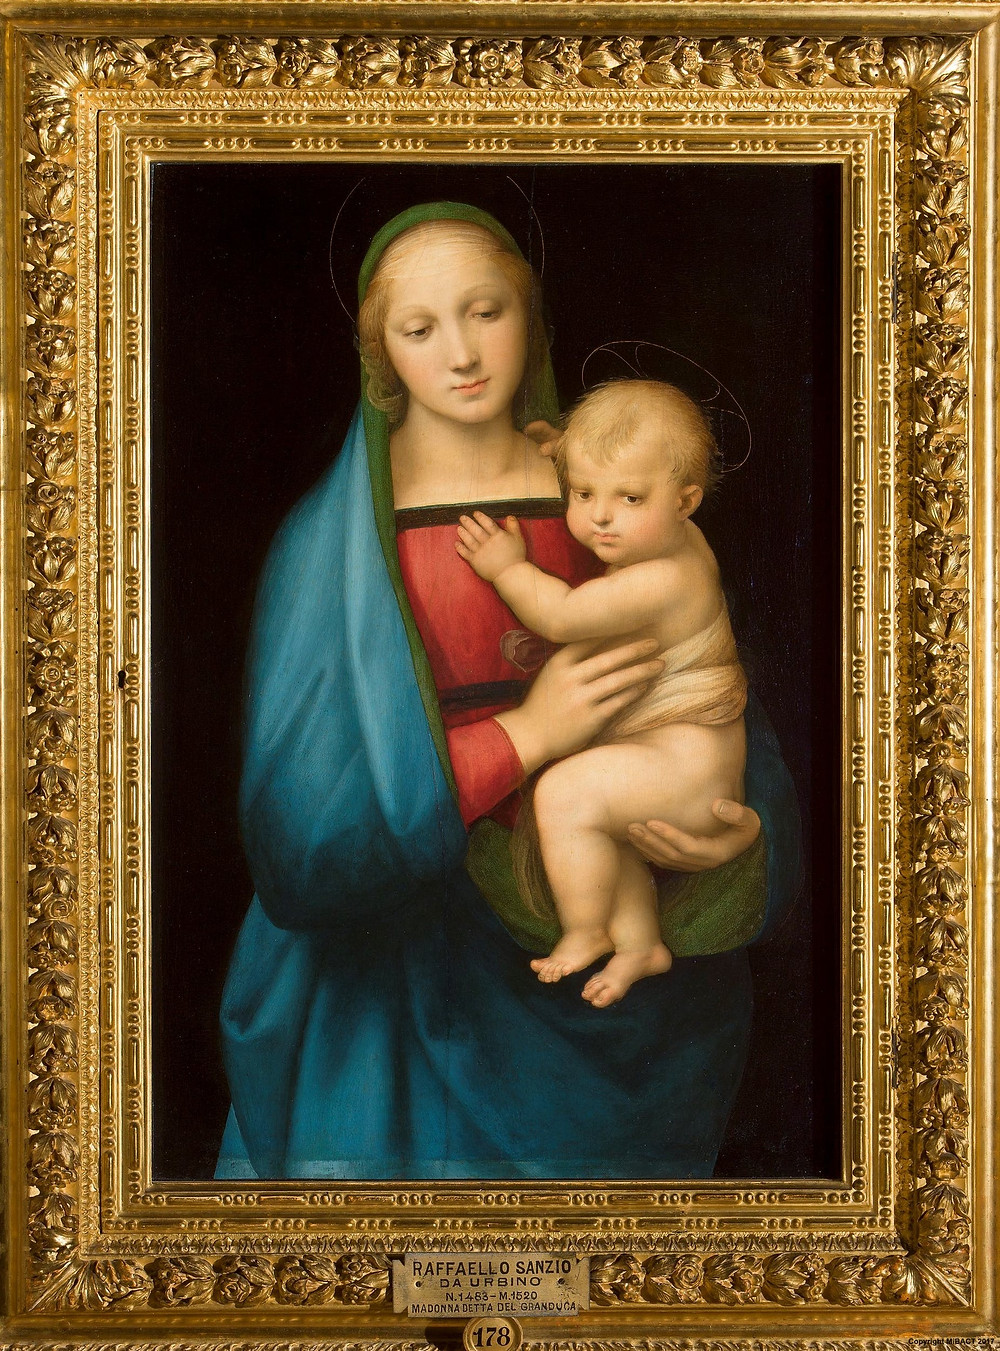 another Raphael madonna in the Pitti Palace